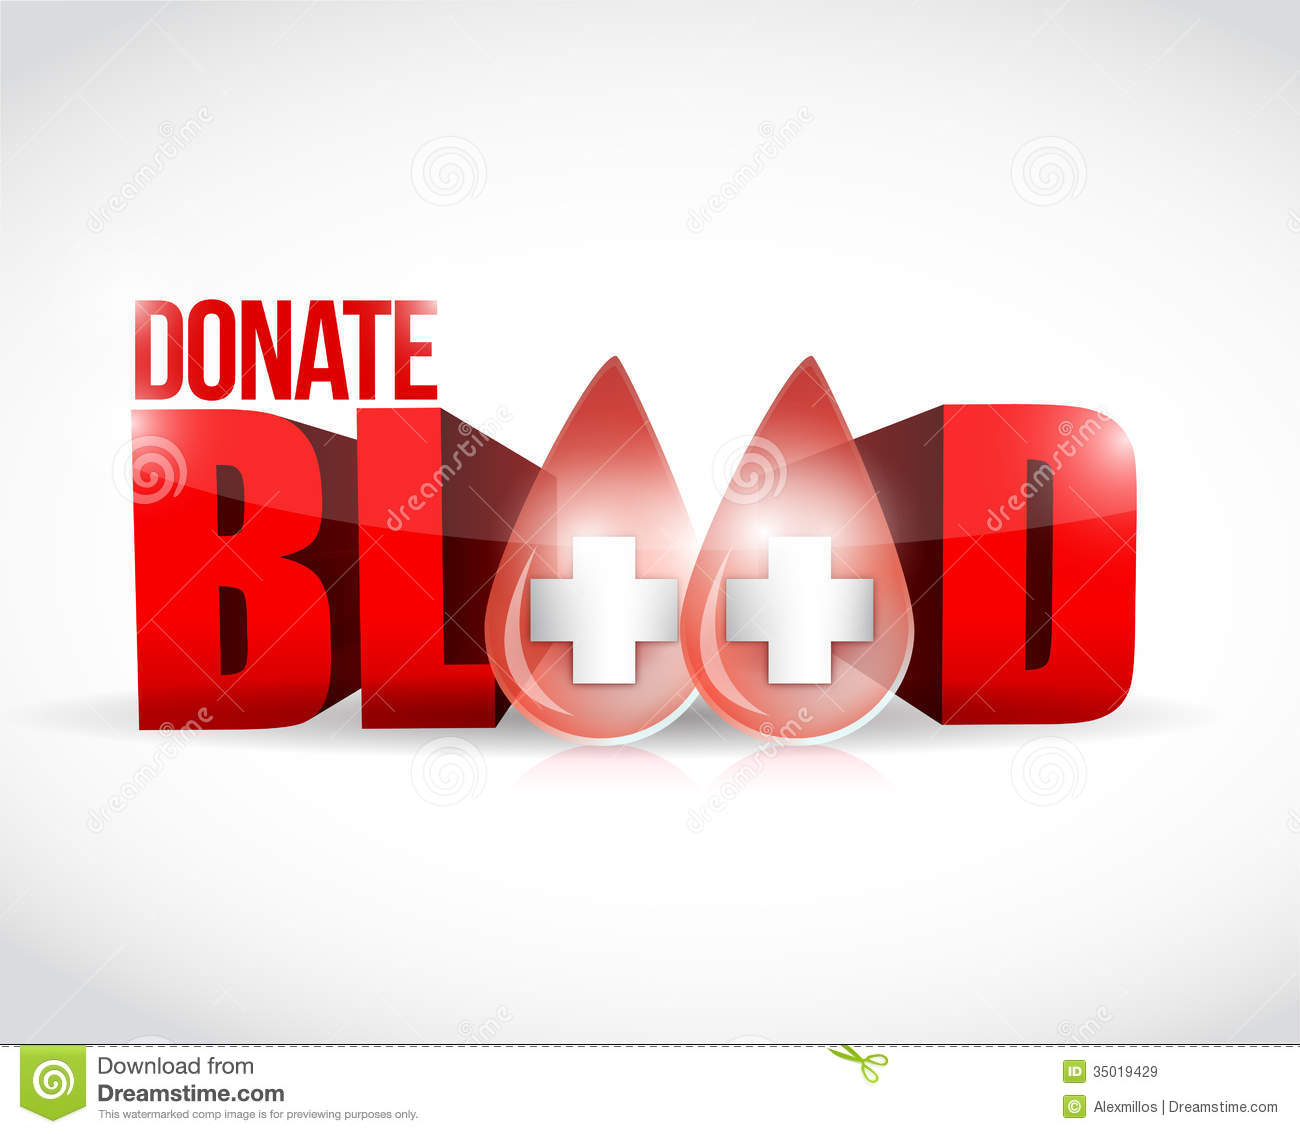 Donate Blood Illustration Design Royalty Free Stock Images Image 35019429